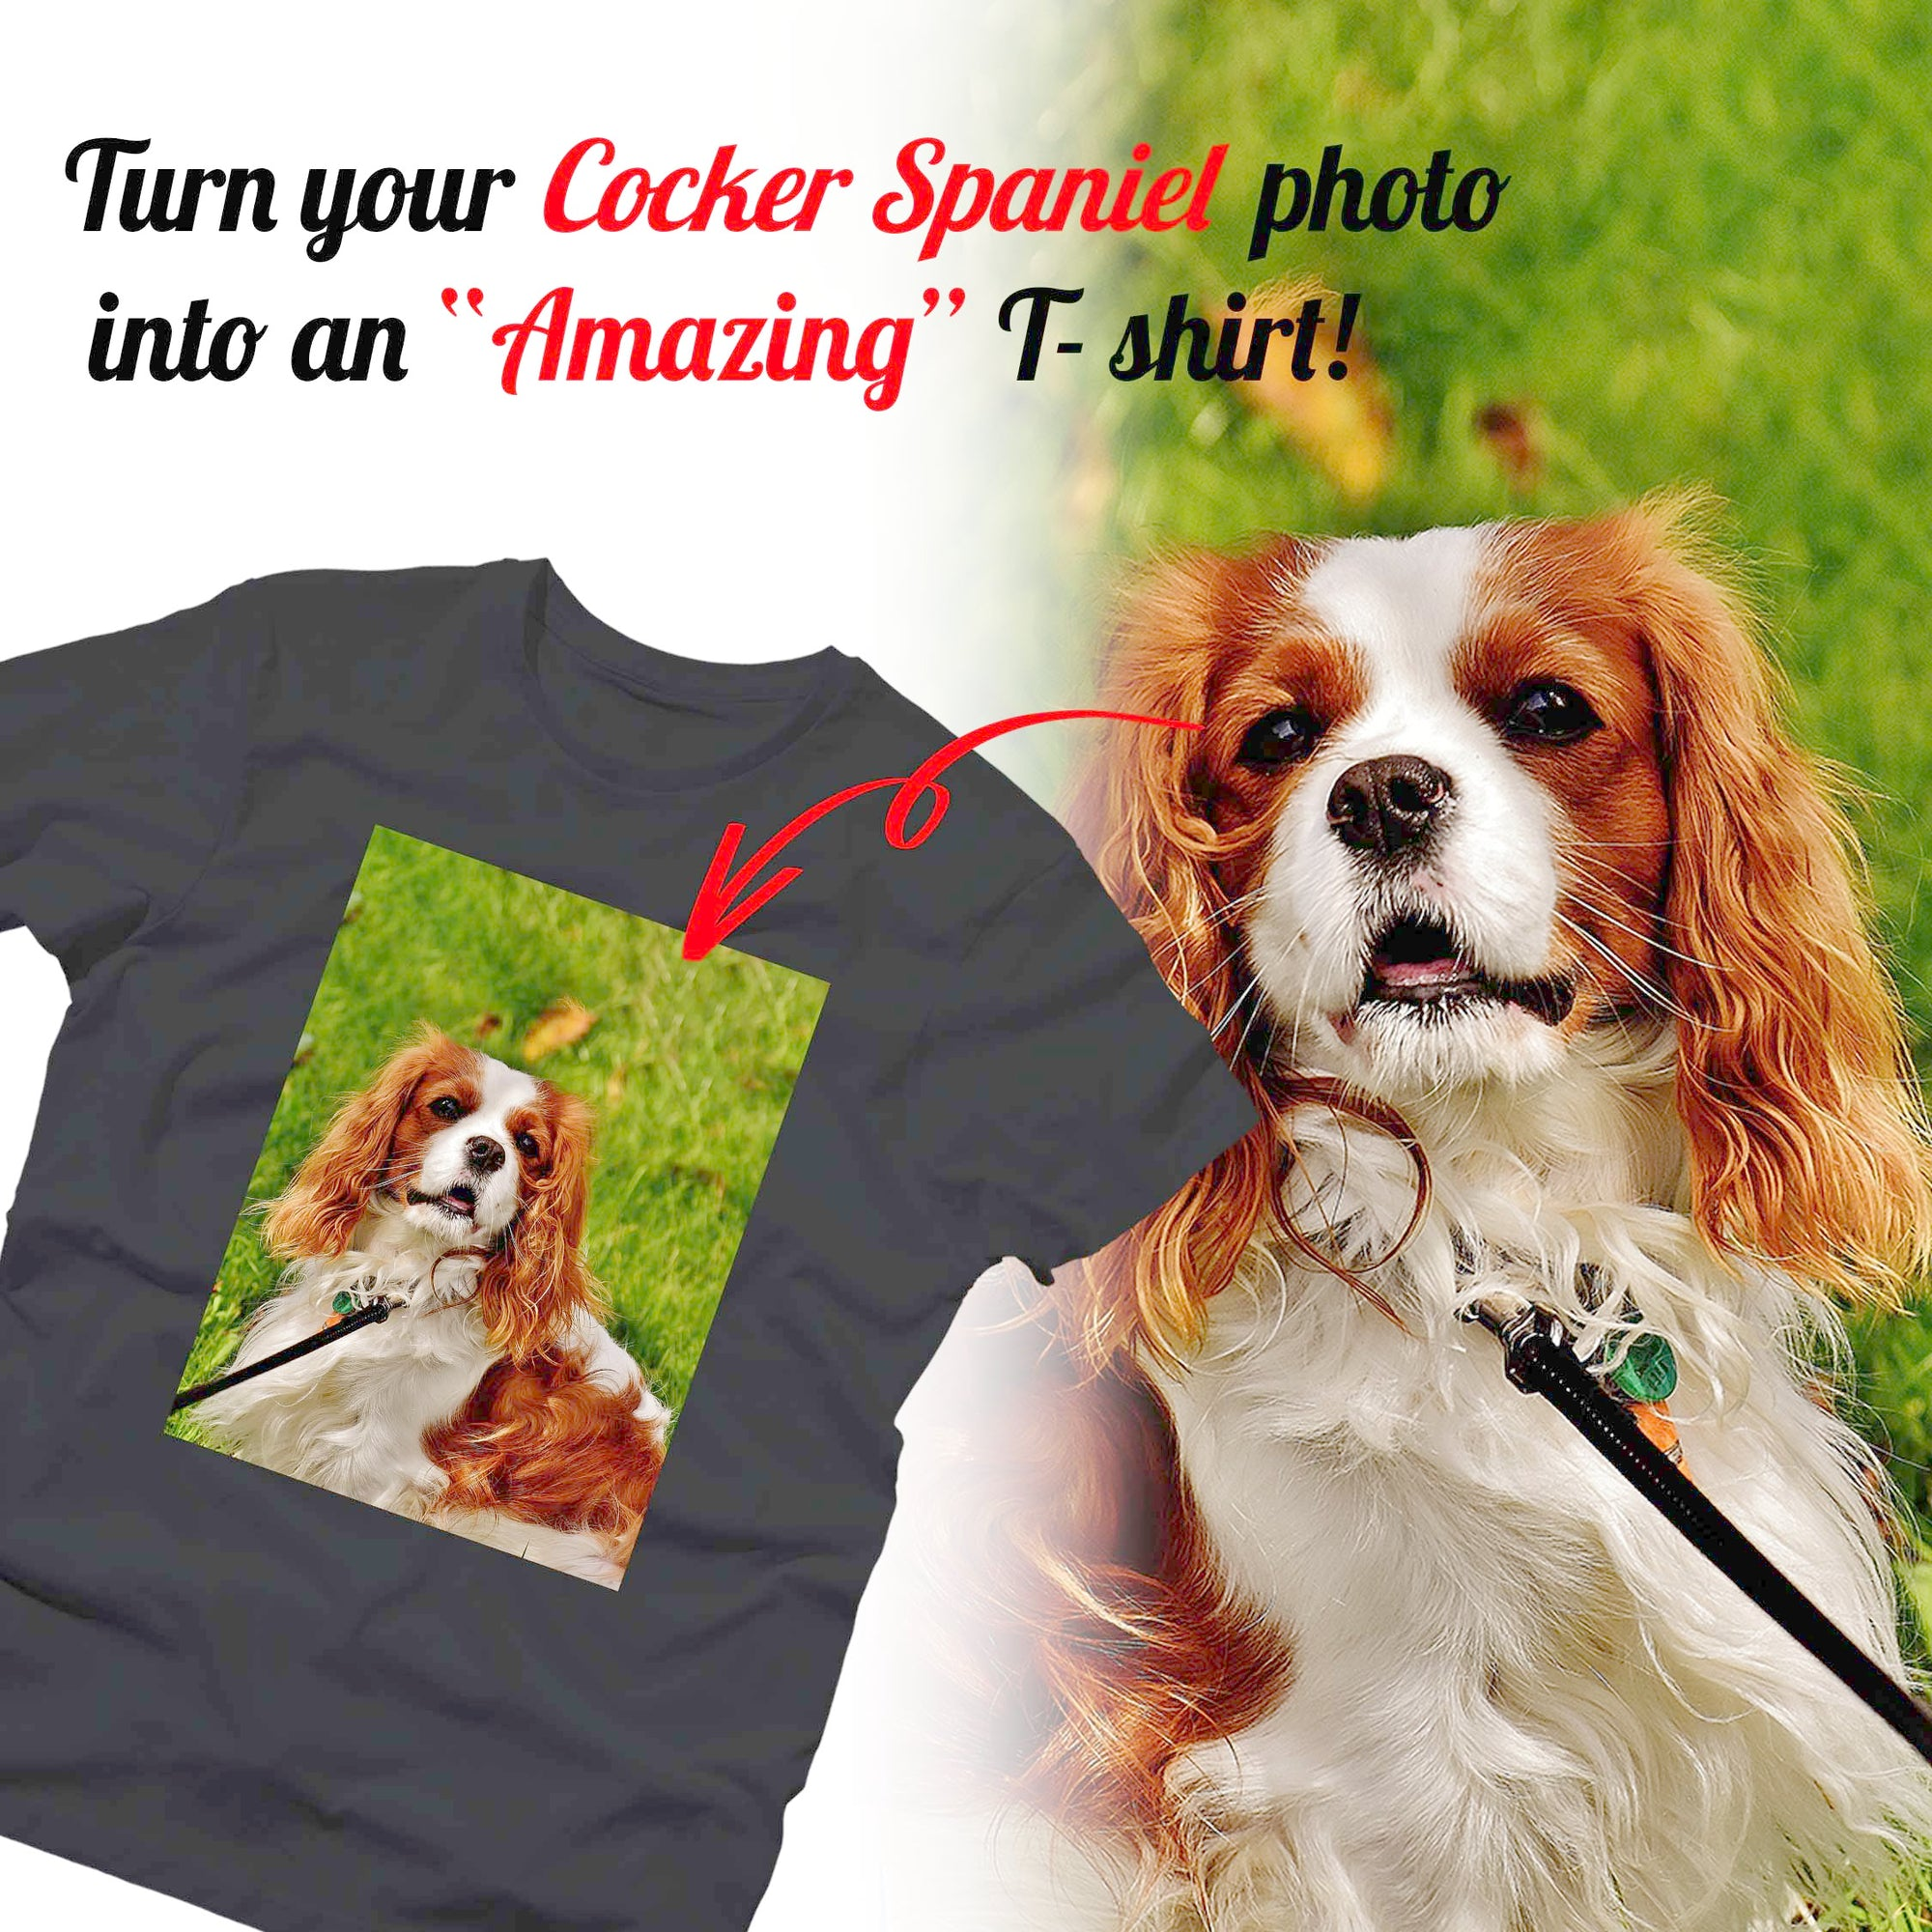 PERSONALIZED unisex t-shirt - upload your COCKER SPANIEL photos